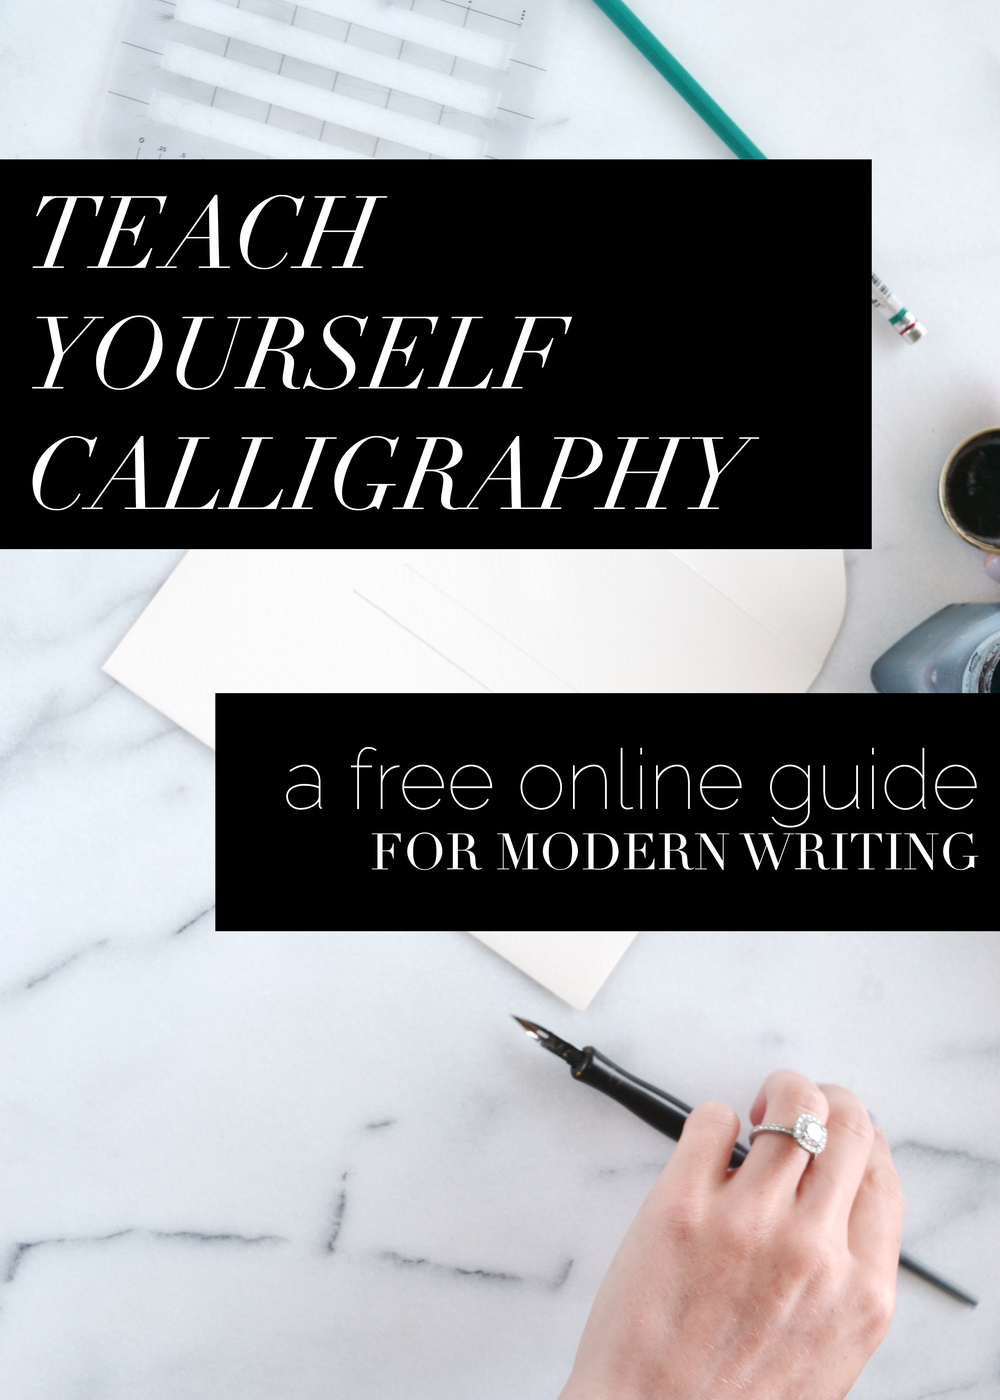 free calligraphy course from boxwoodavenue.com